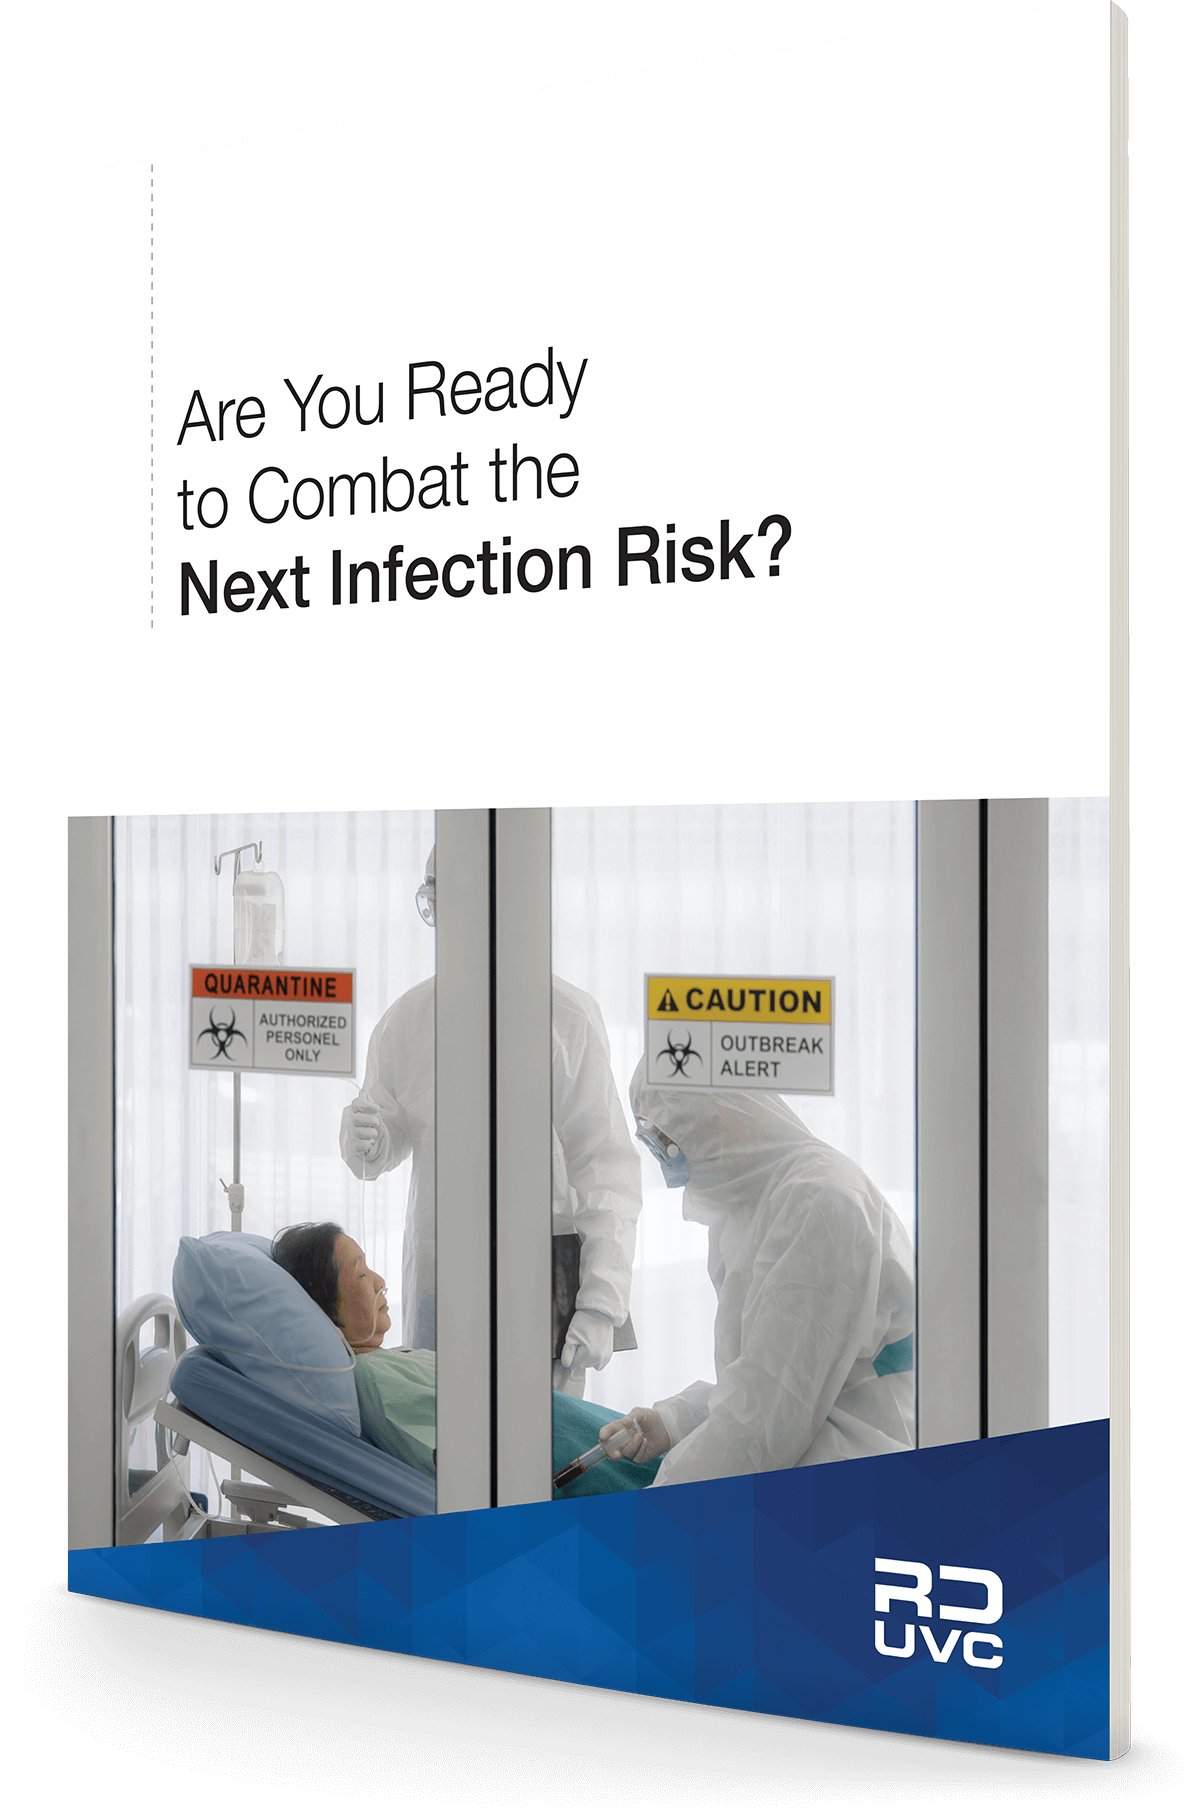 Are You Ready to Combat The Next Infection Risk?